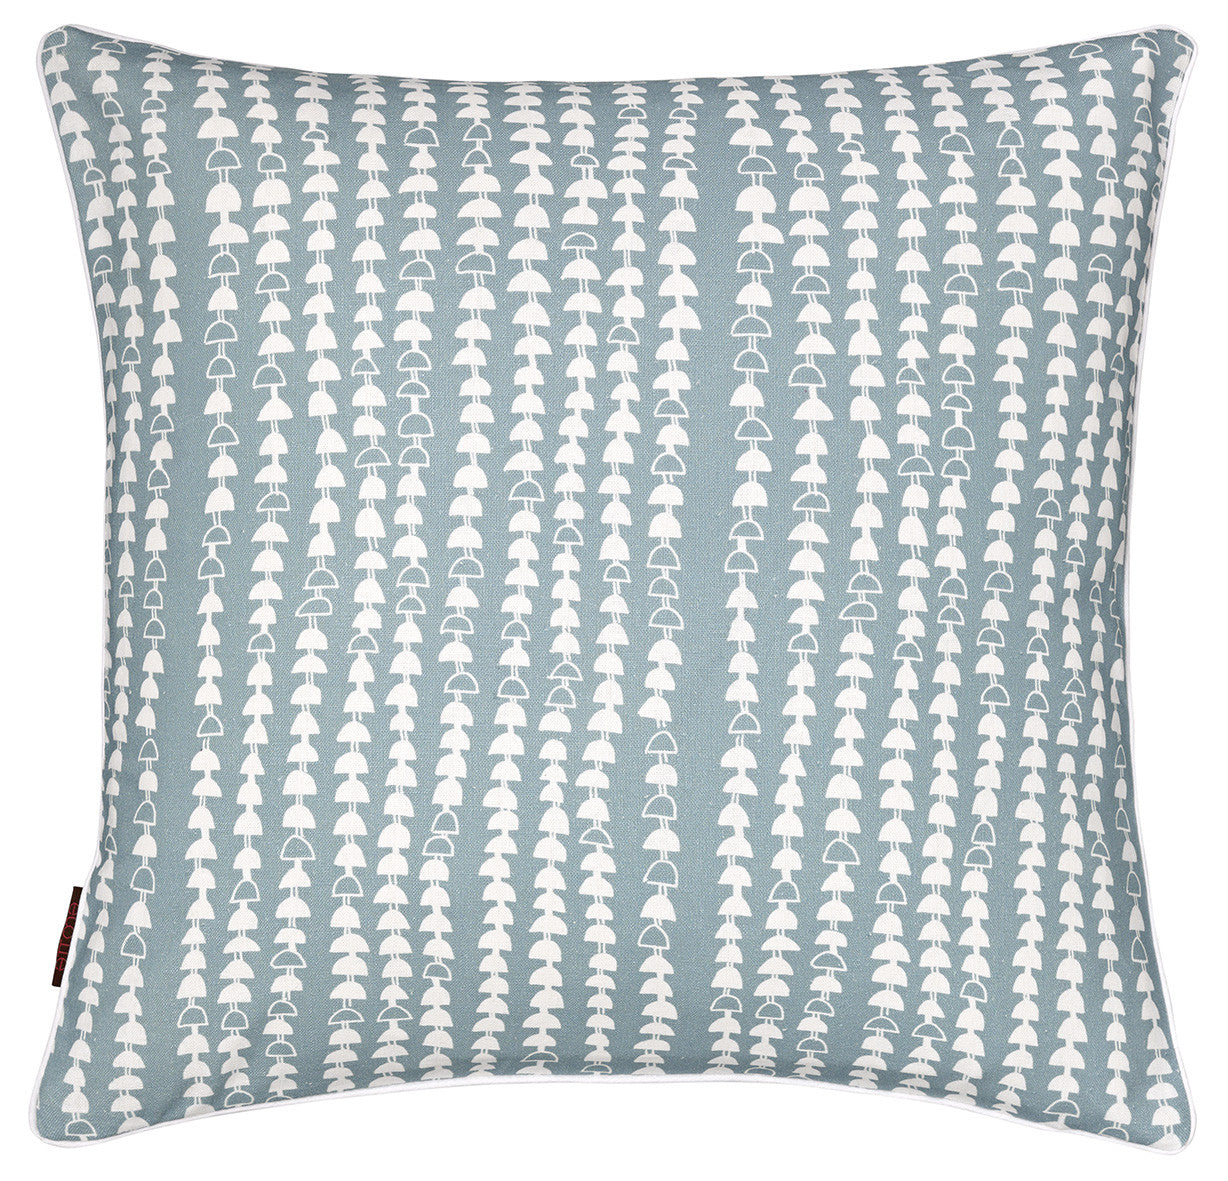 Hopi Graphic Pattern Linen Union Throw Pillow in Light Chambray Blue Ships from Canada worldwide including the USA